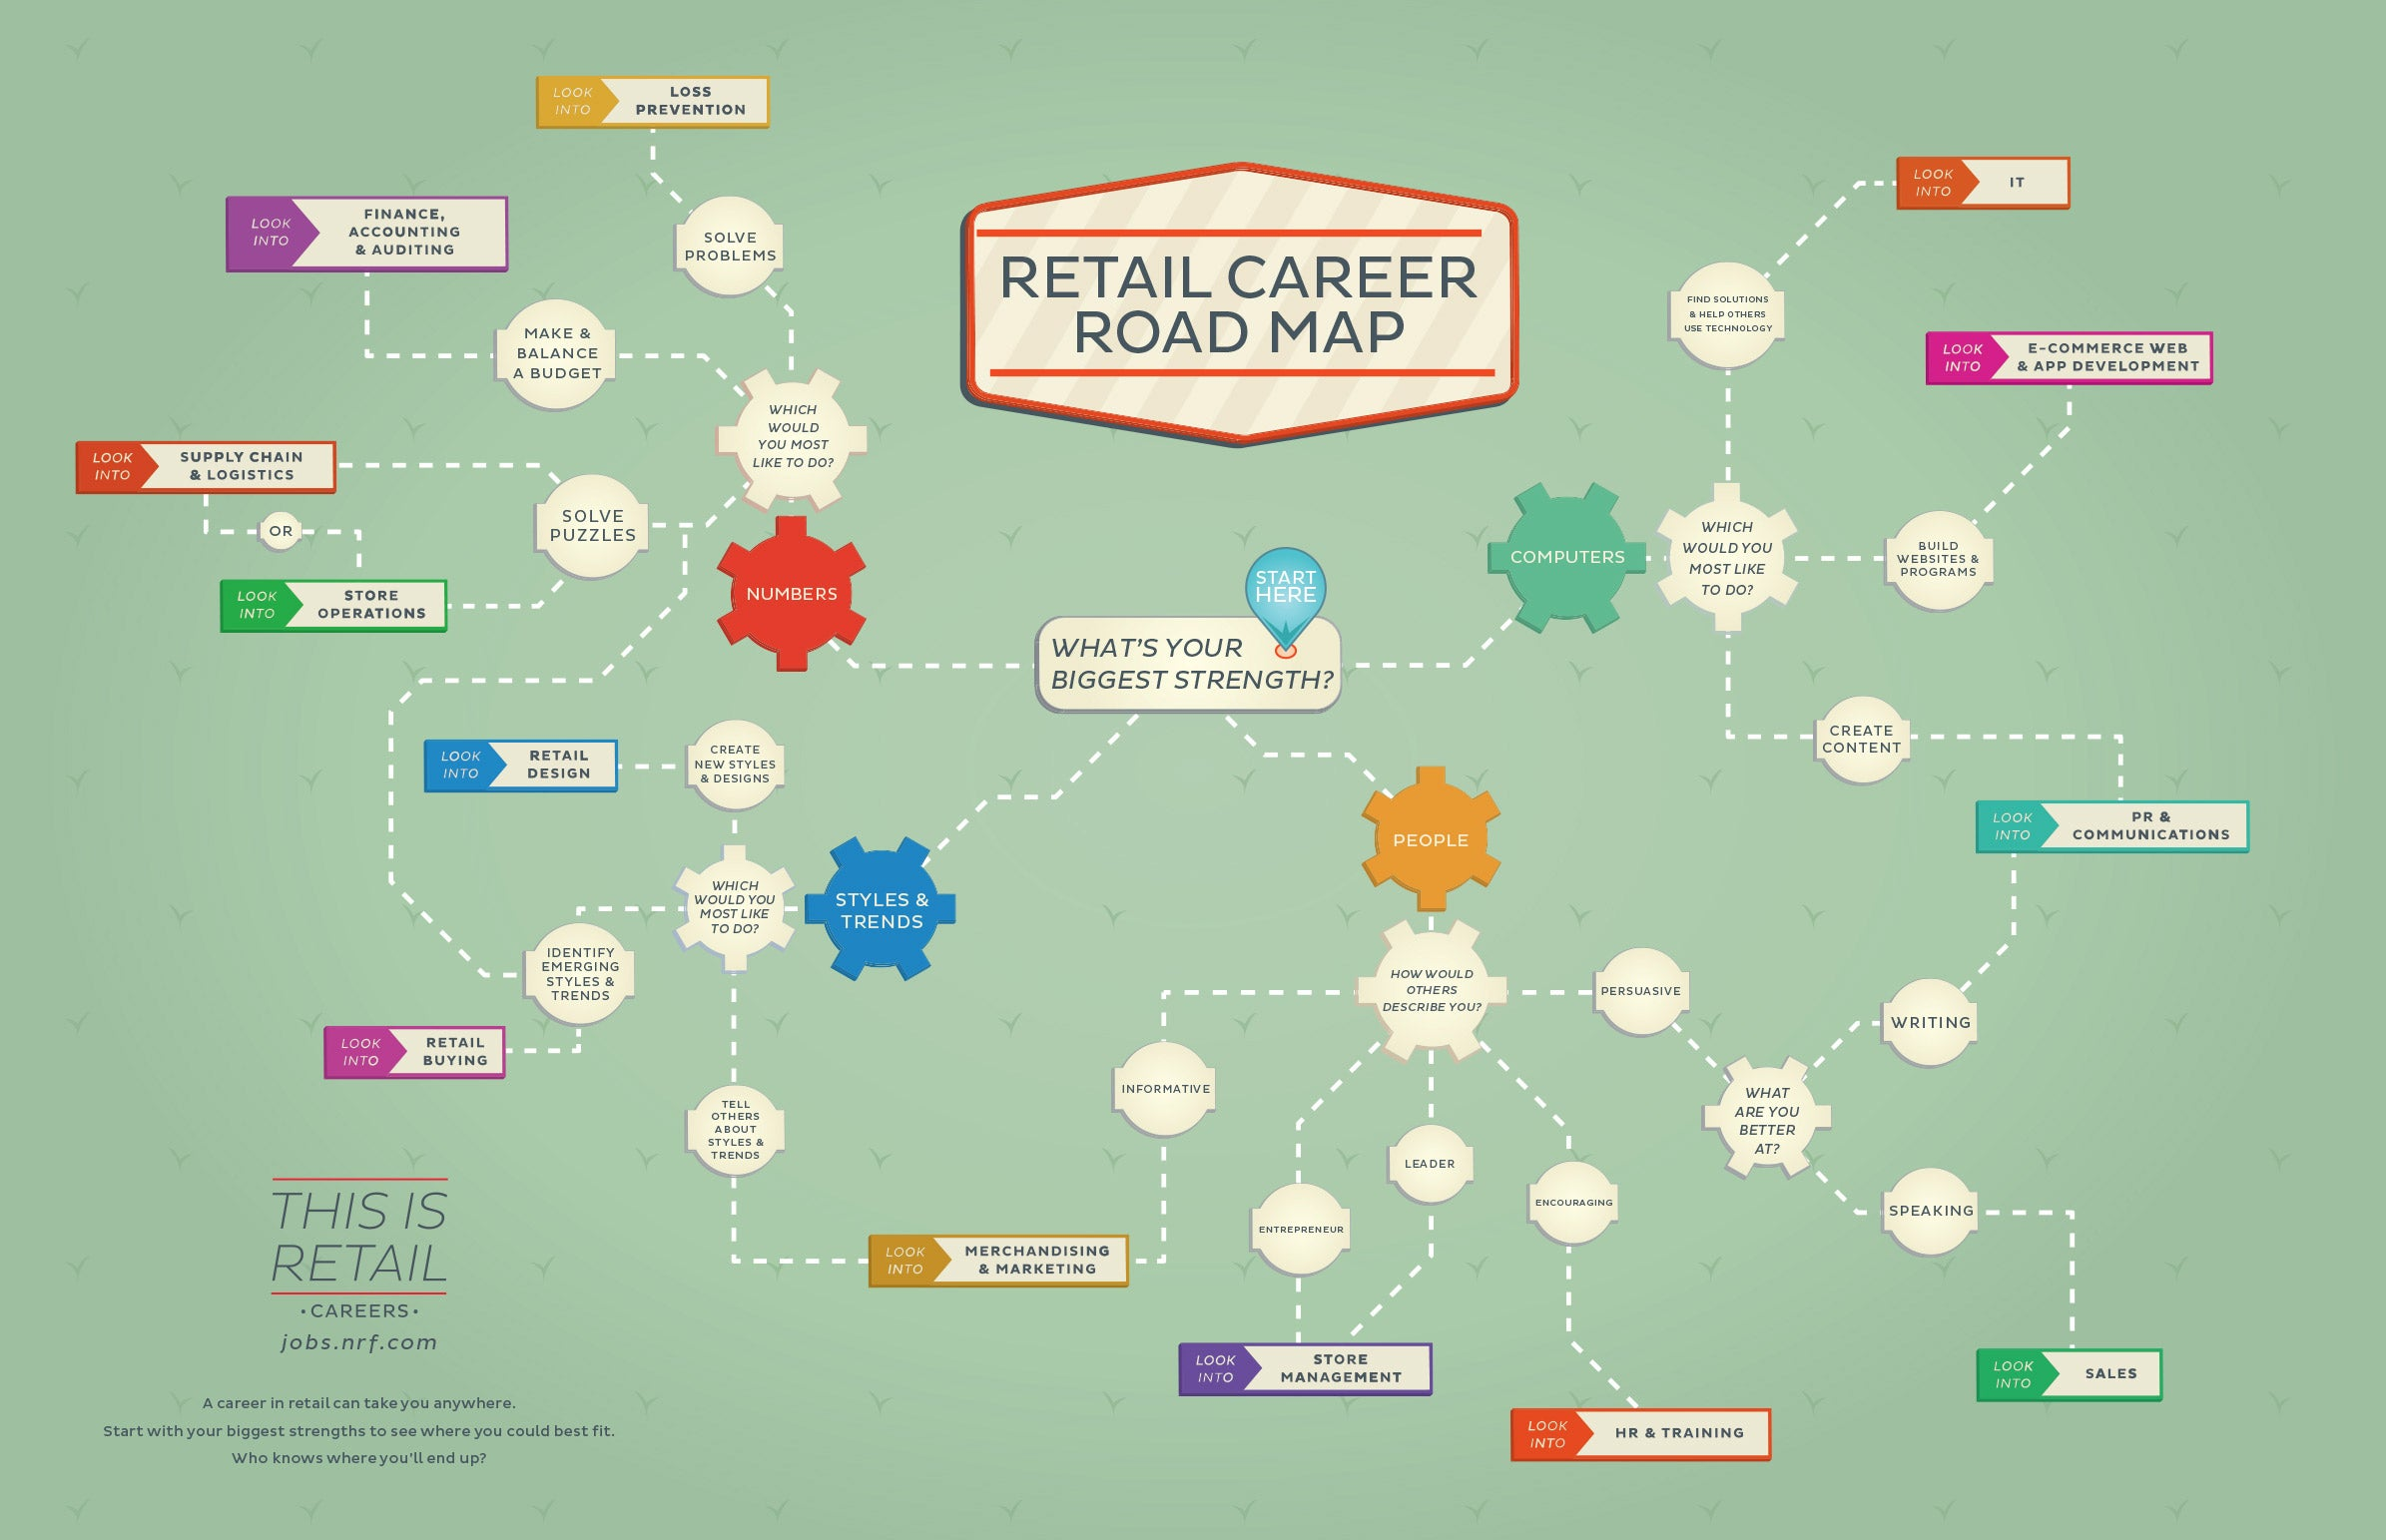 Hiring in Retail? How to Find the Right Employee for the Job (Infographic)